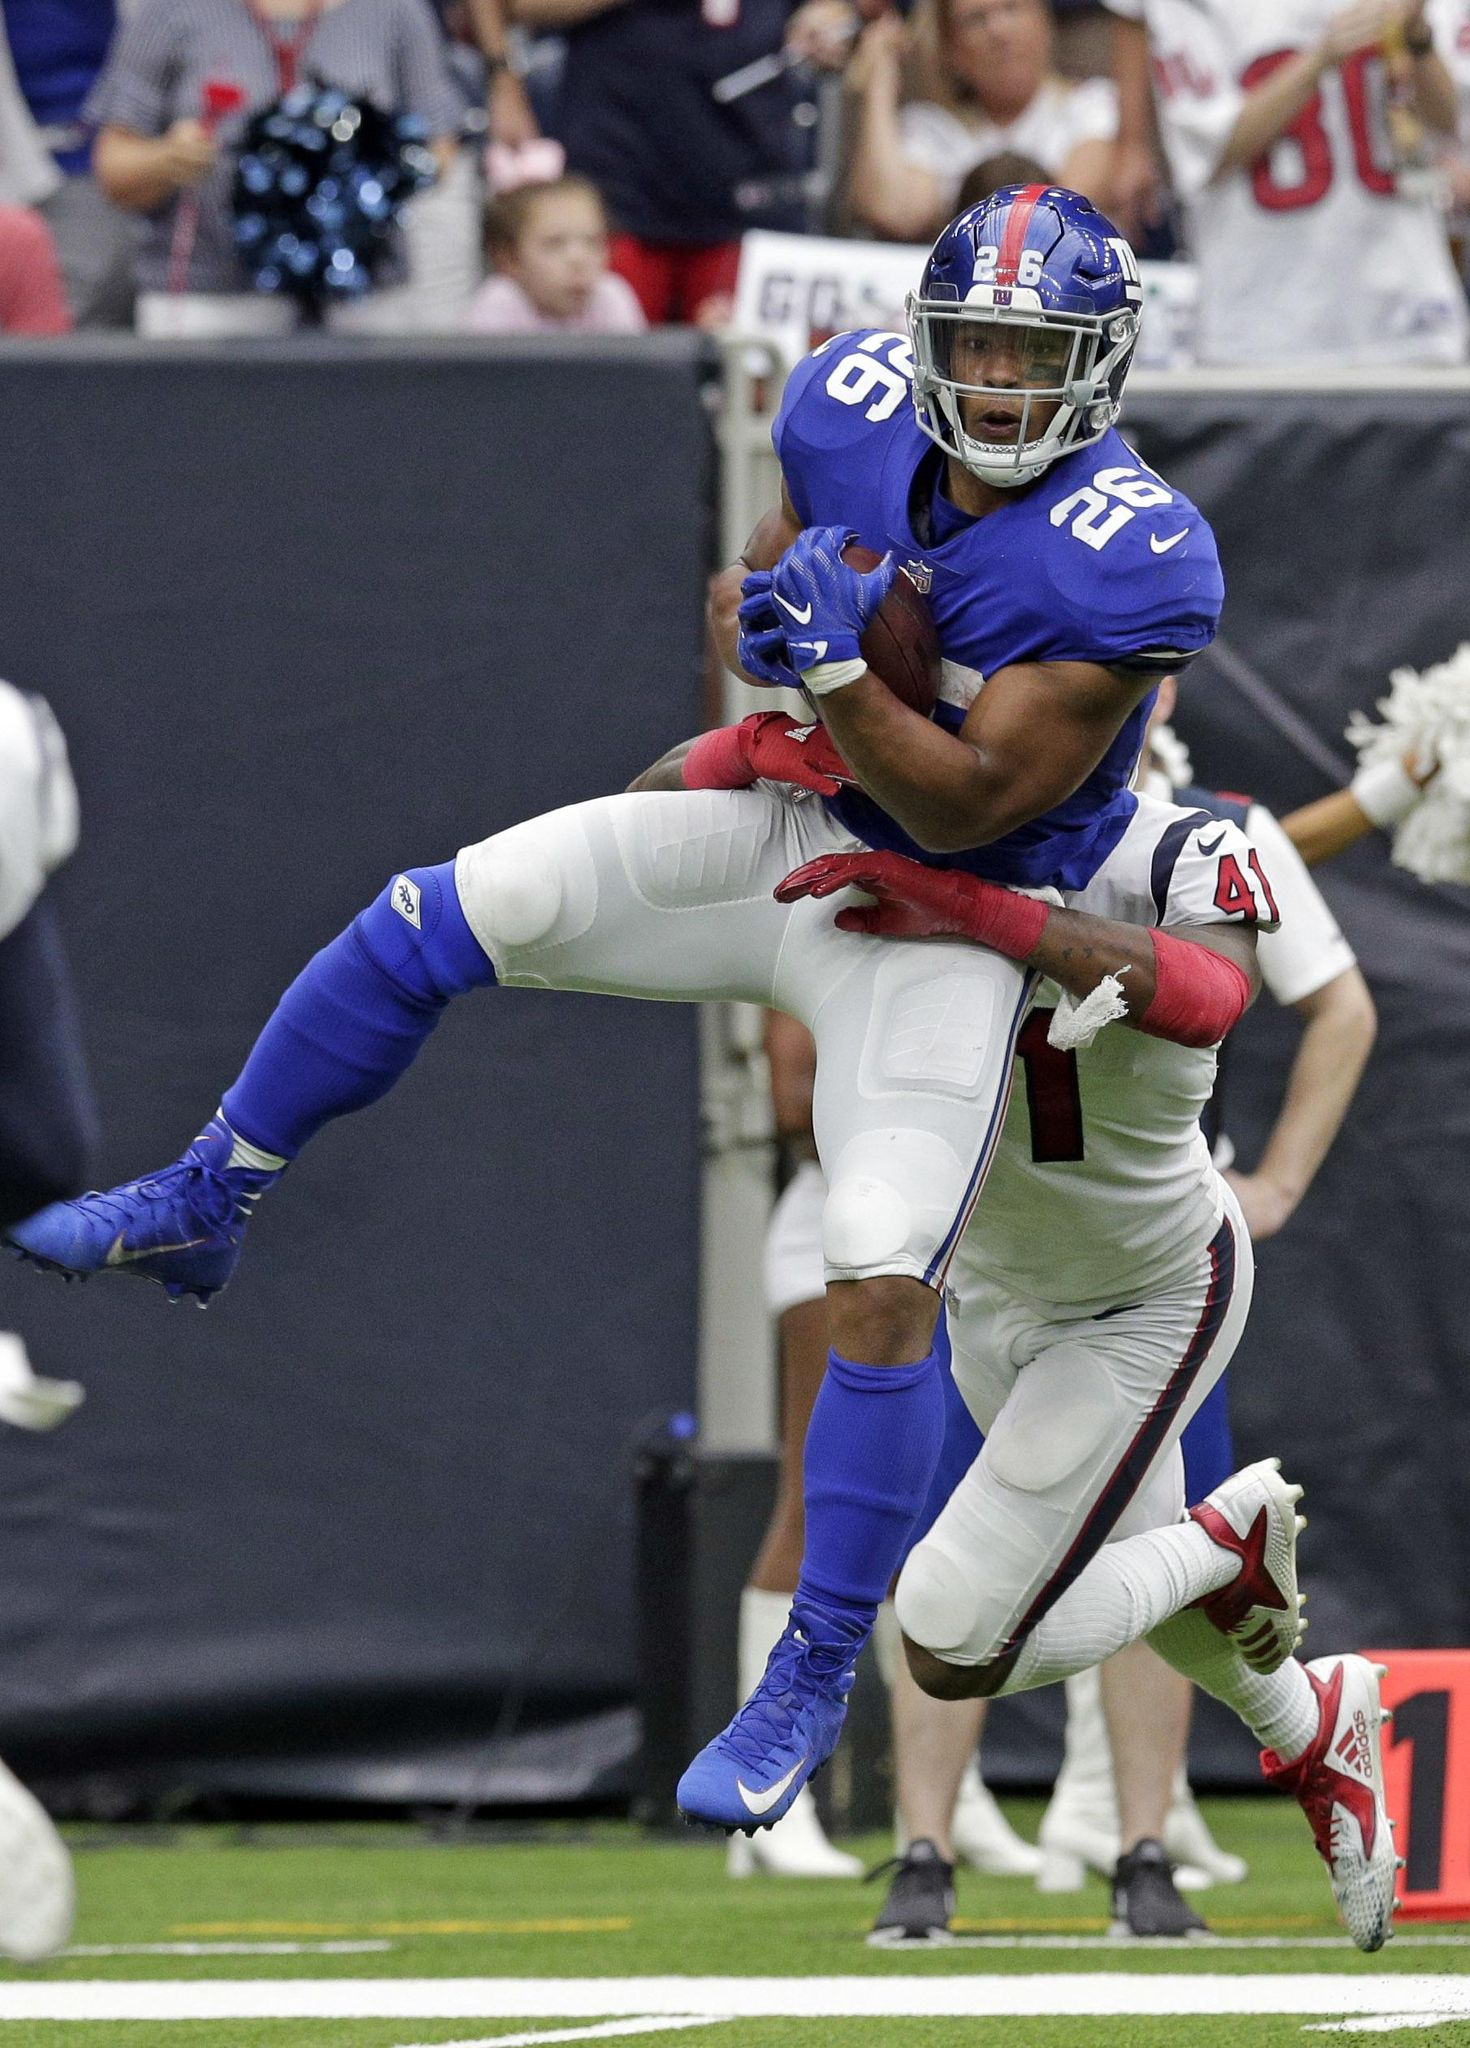 Giants finally finish a game to get 27-22 win over Texans - Washington Times